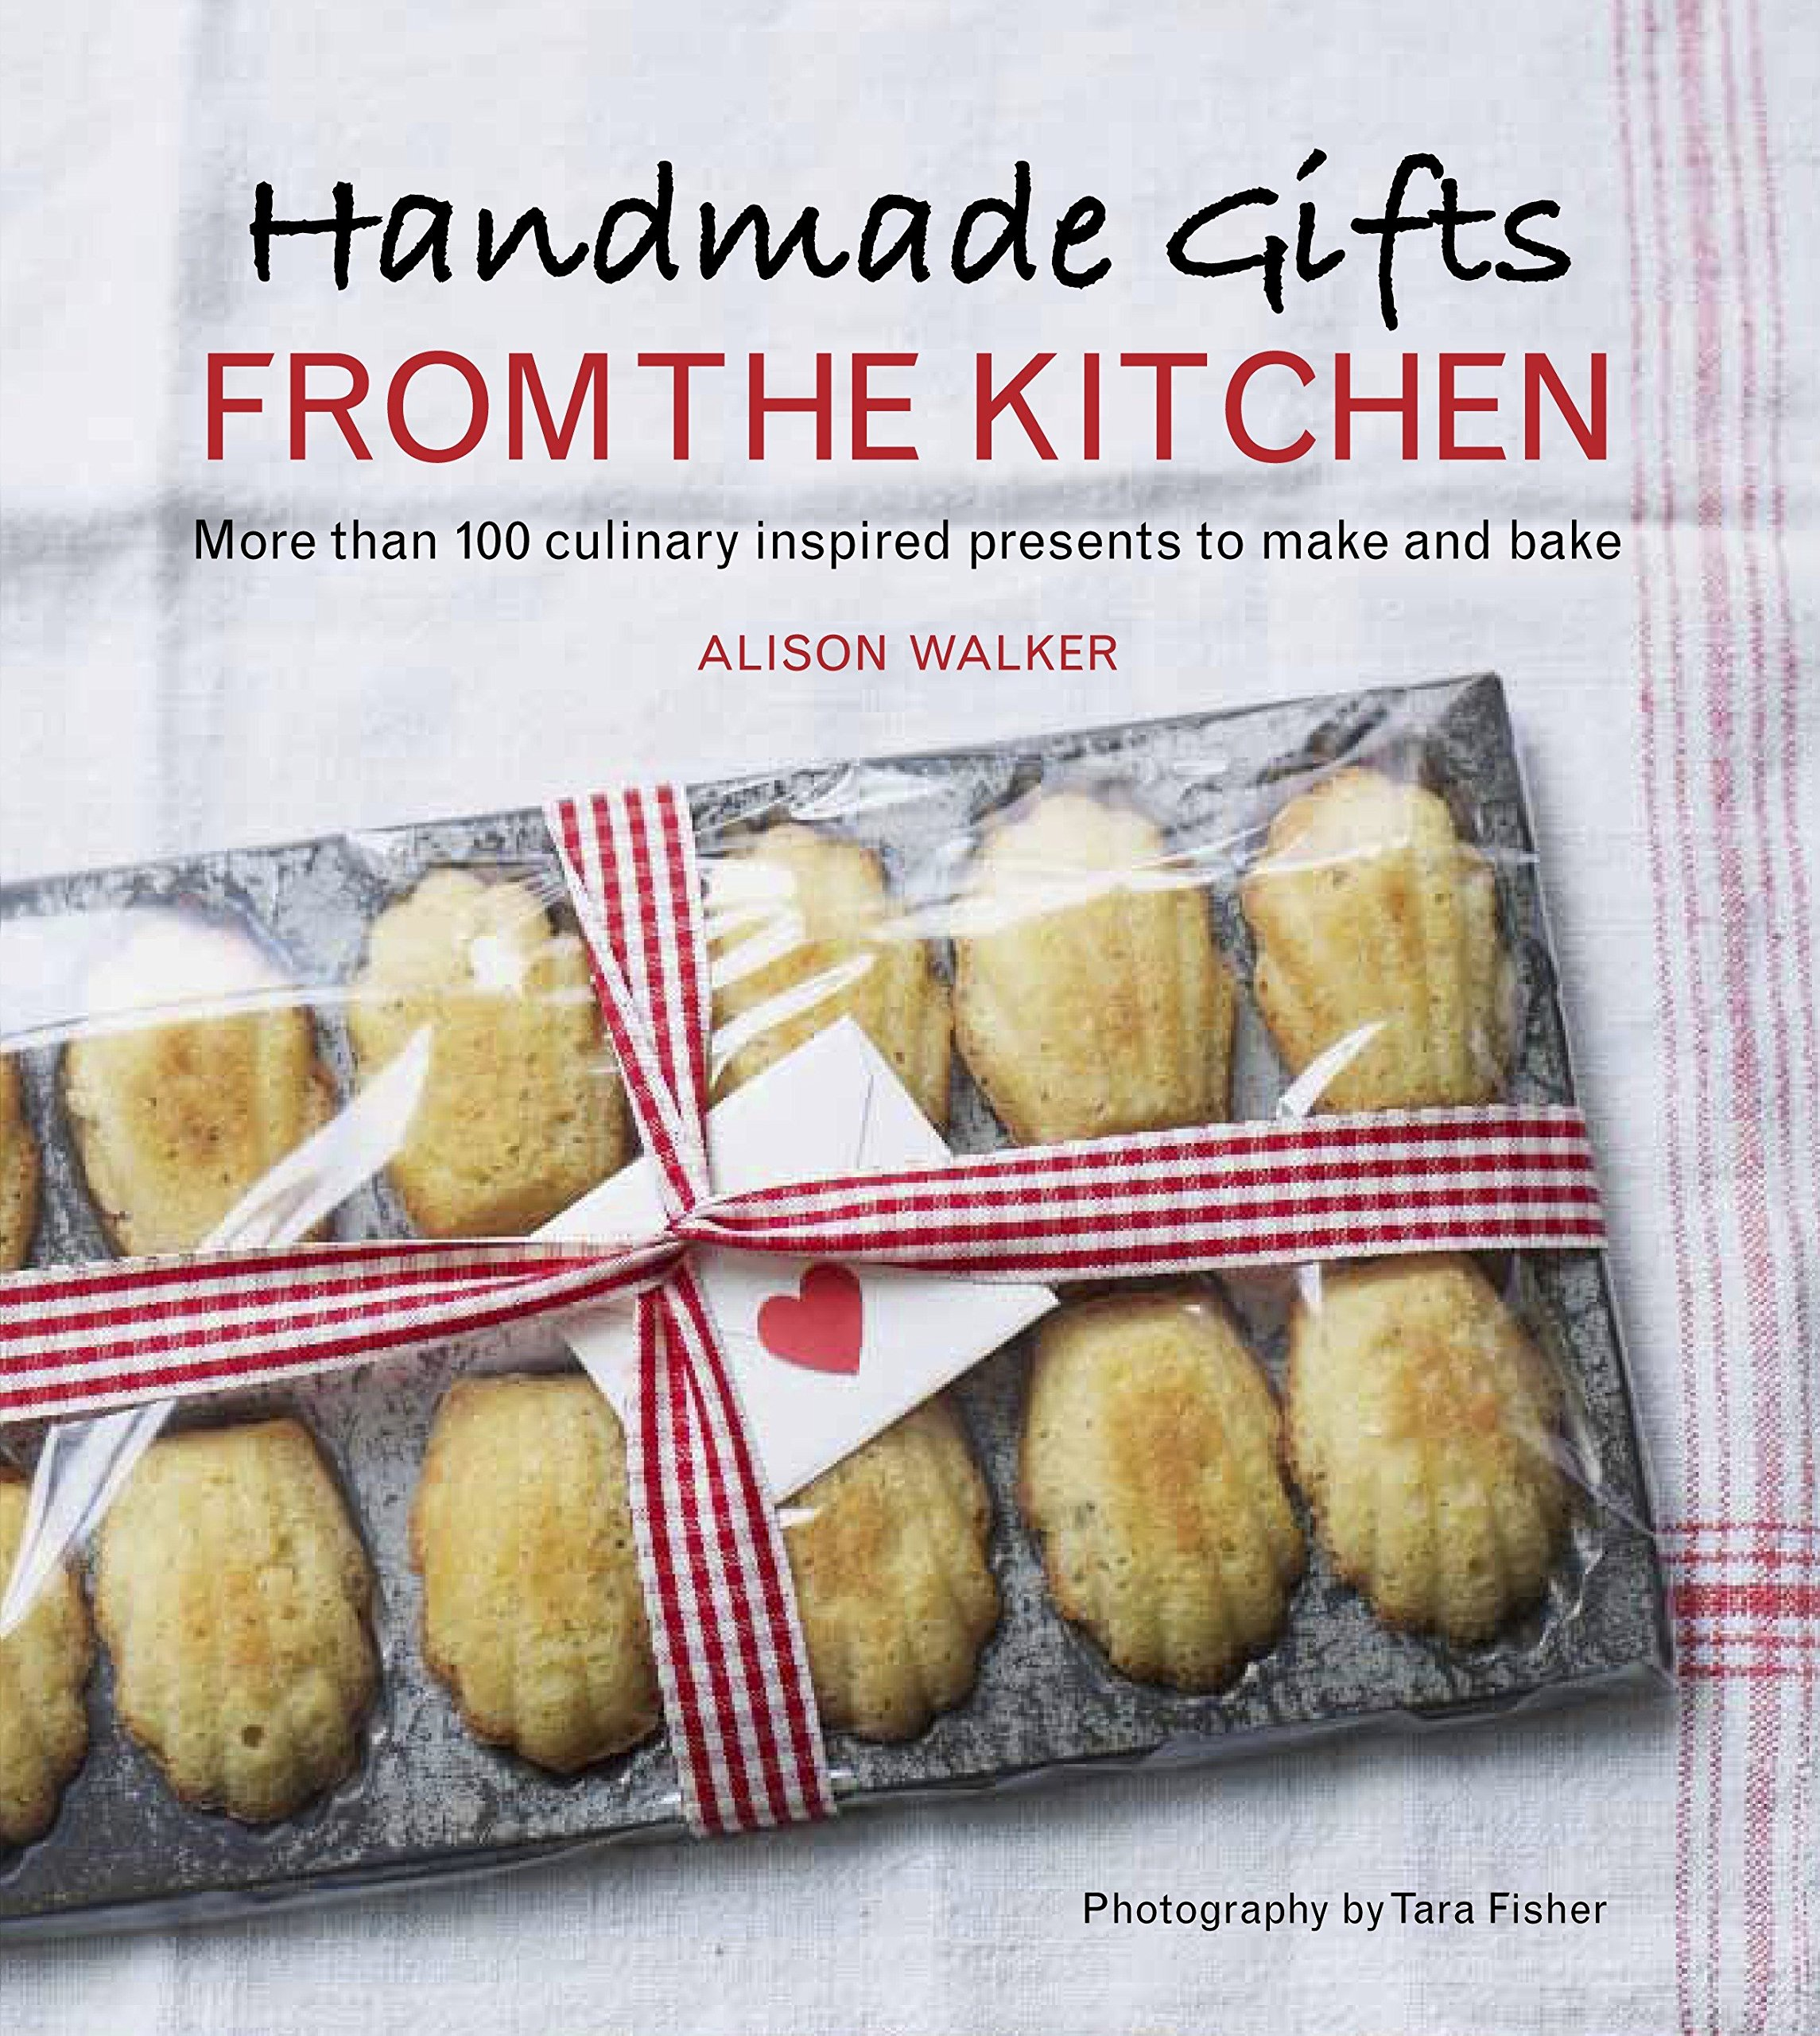 Handmade Gifts From The Kitchen More Than 100 Culinary Inspired Presents To Make And Bake Walker Alison 9780449016671 Amazon Com Books